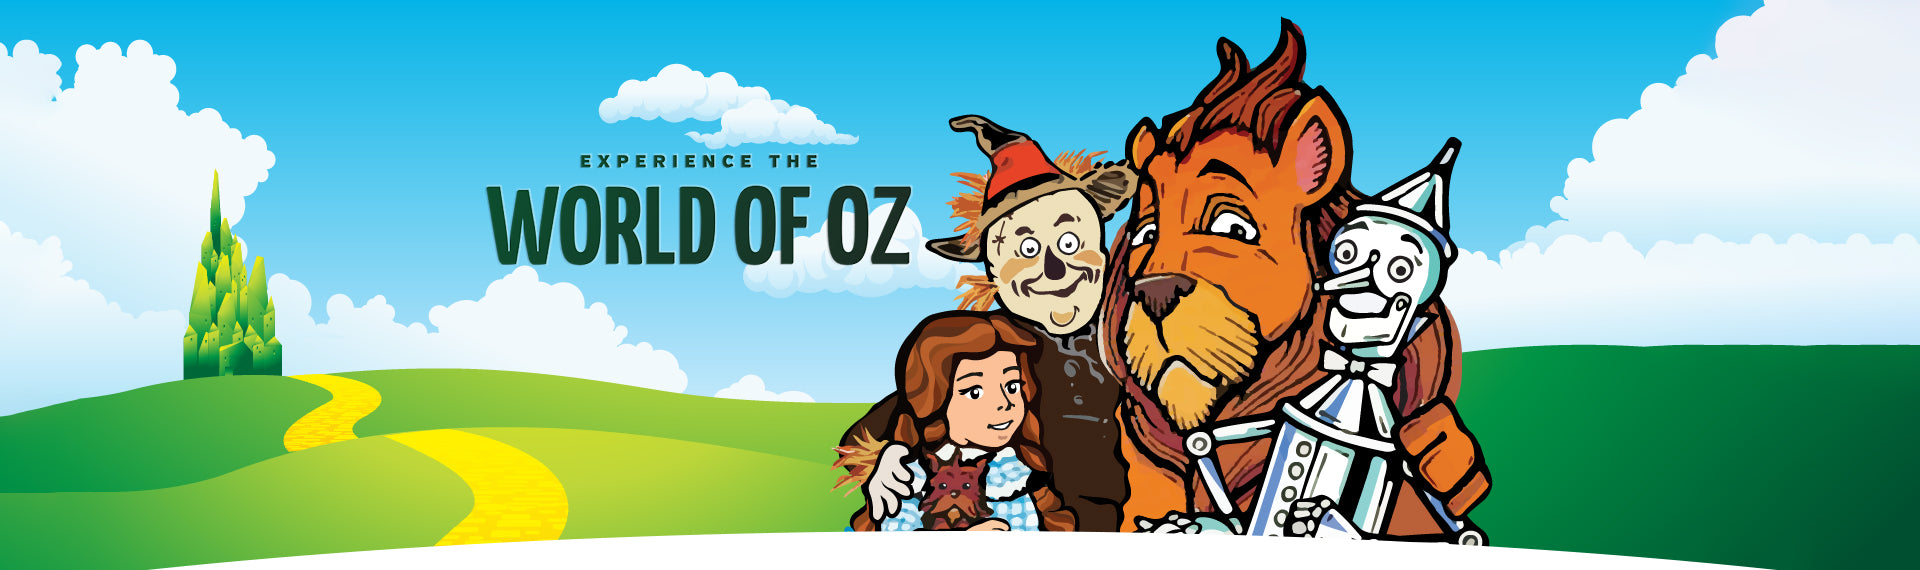 Experience the World of OZ